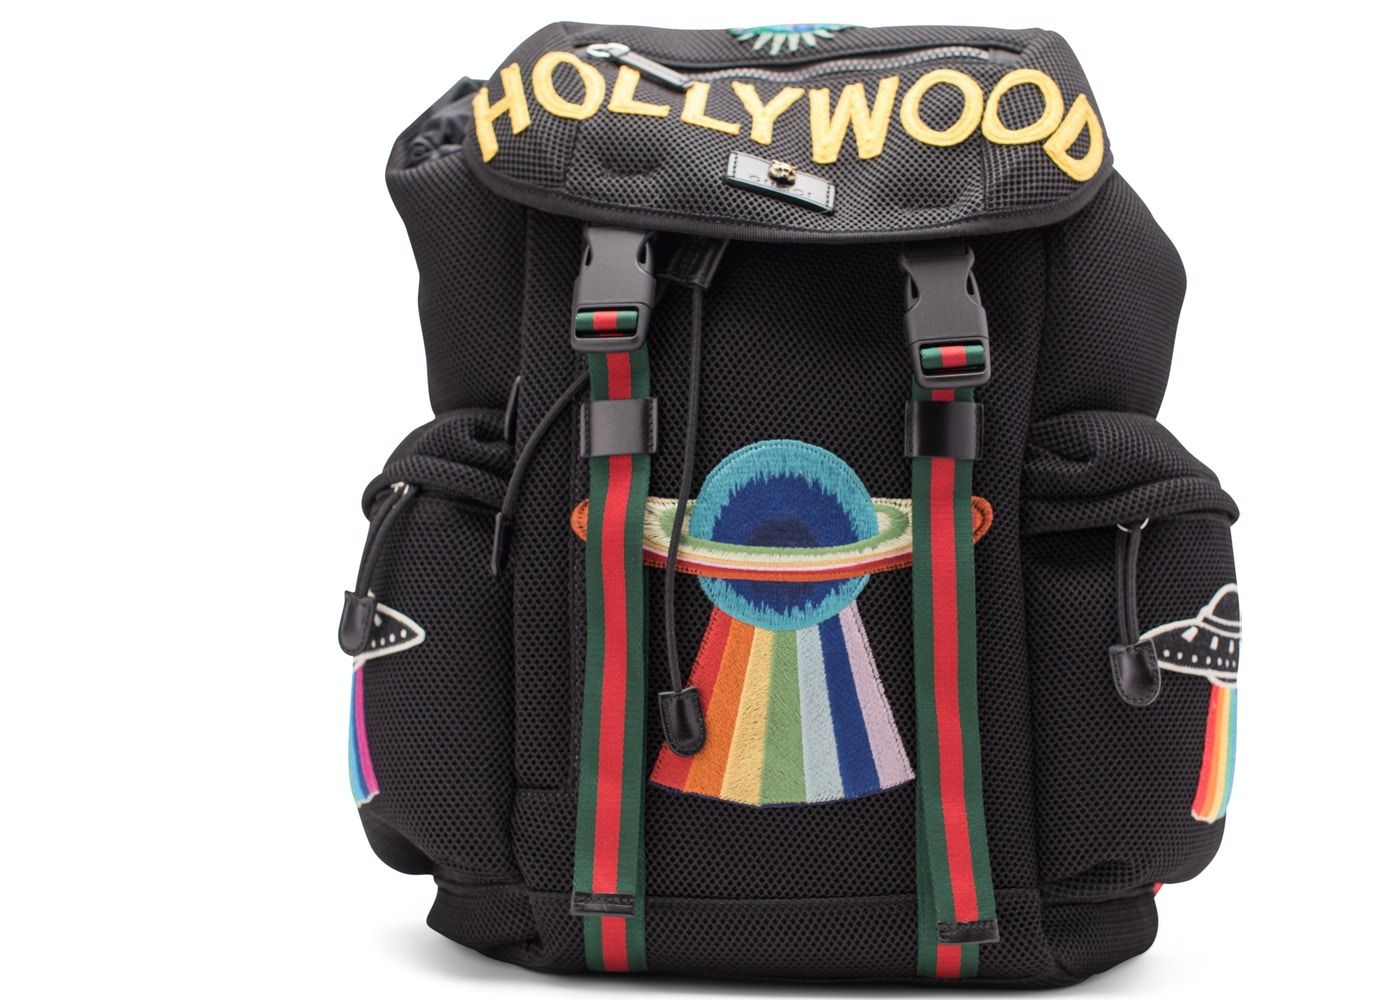 a2014a11ee2 Gucci Mesh Embroidery Backpack Hollywood UFO Planet Embroidery ...